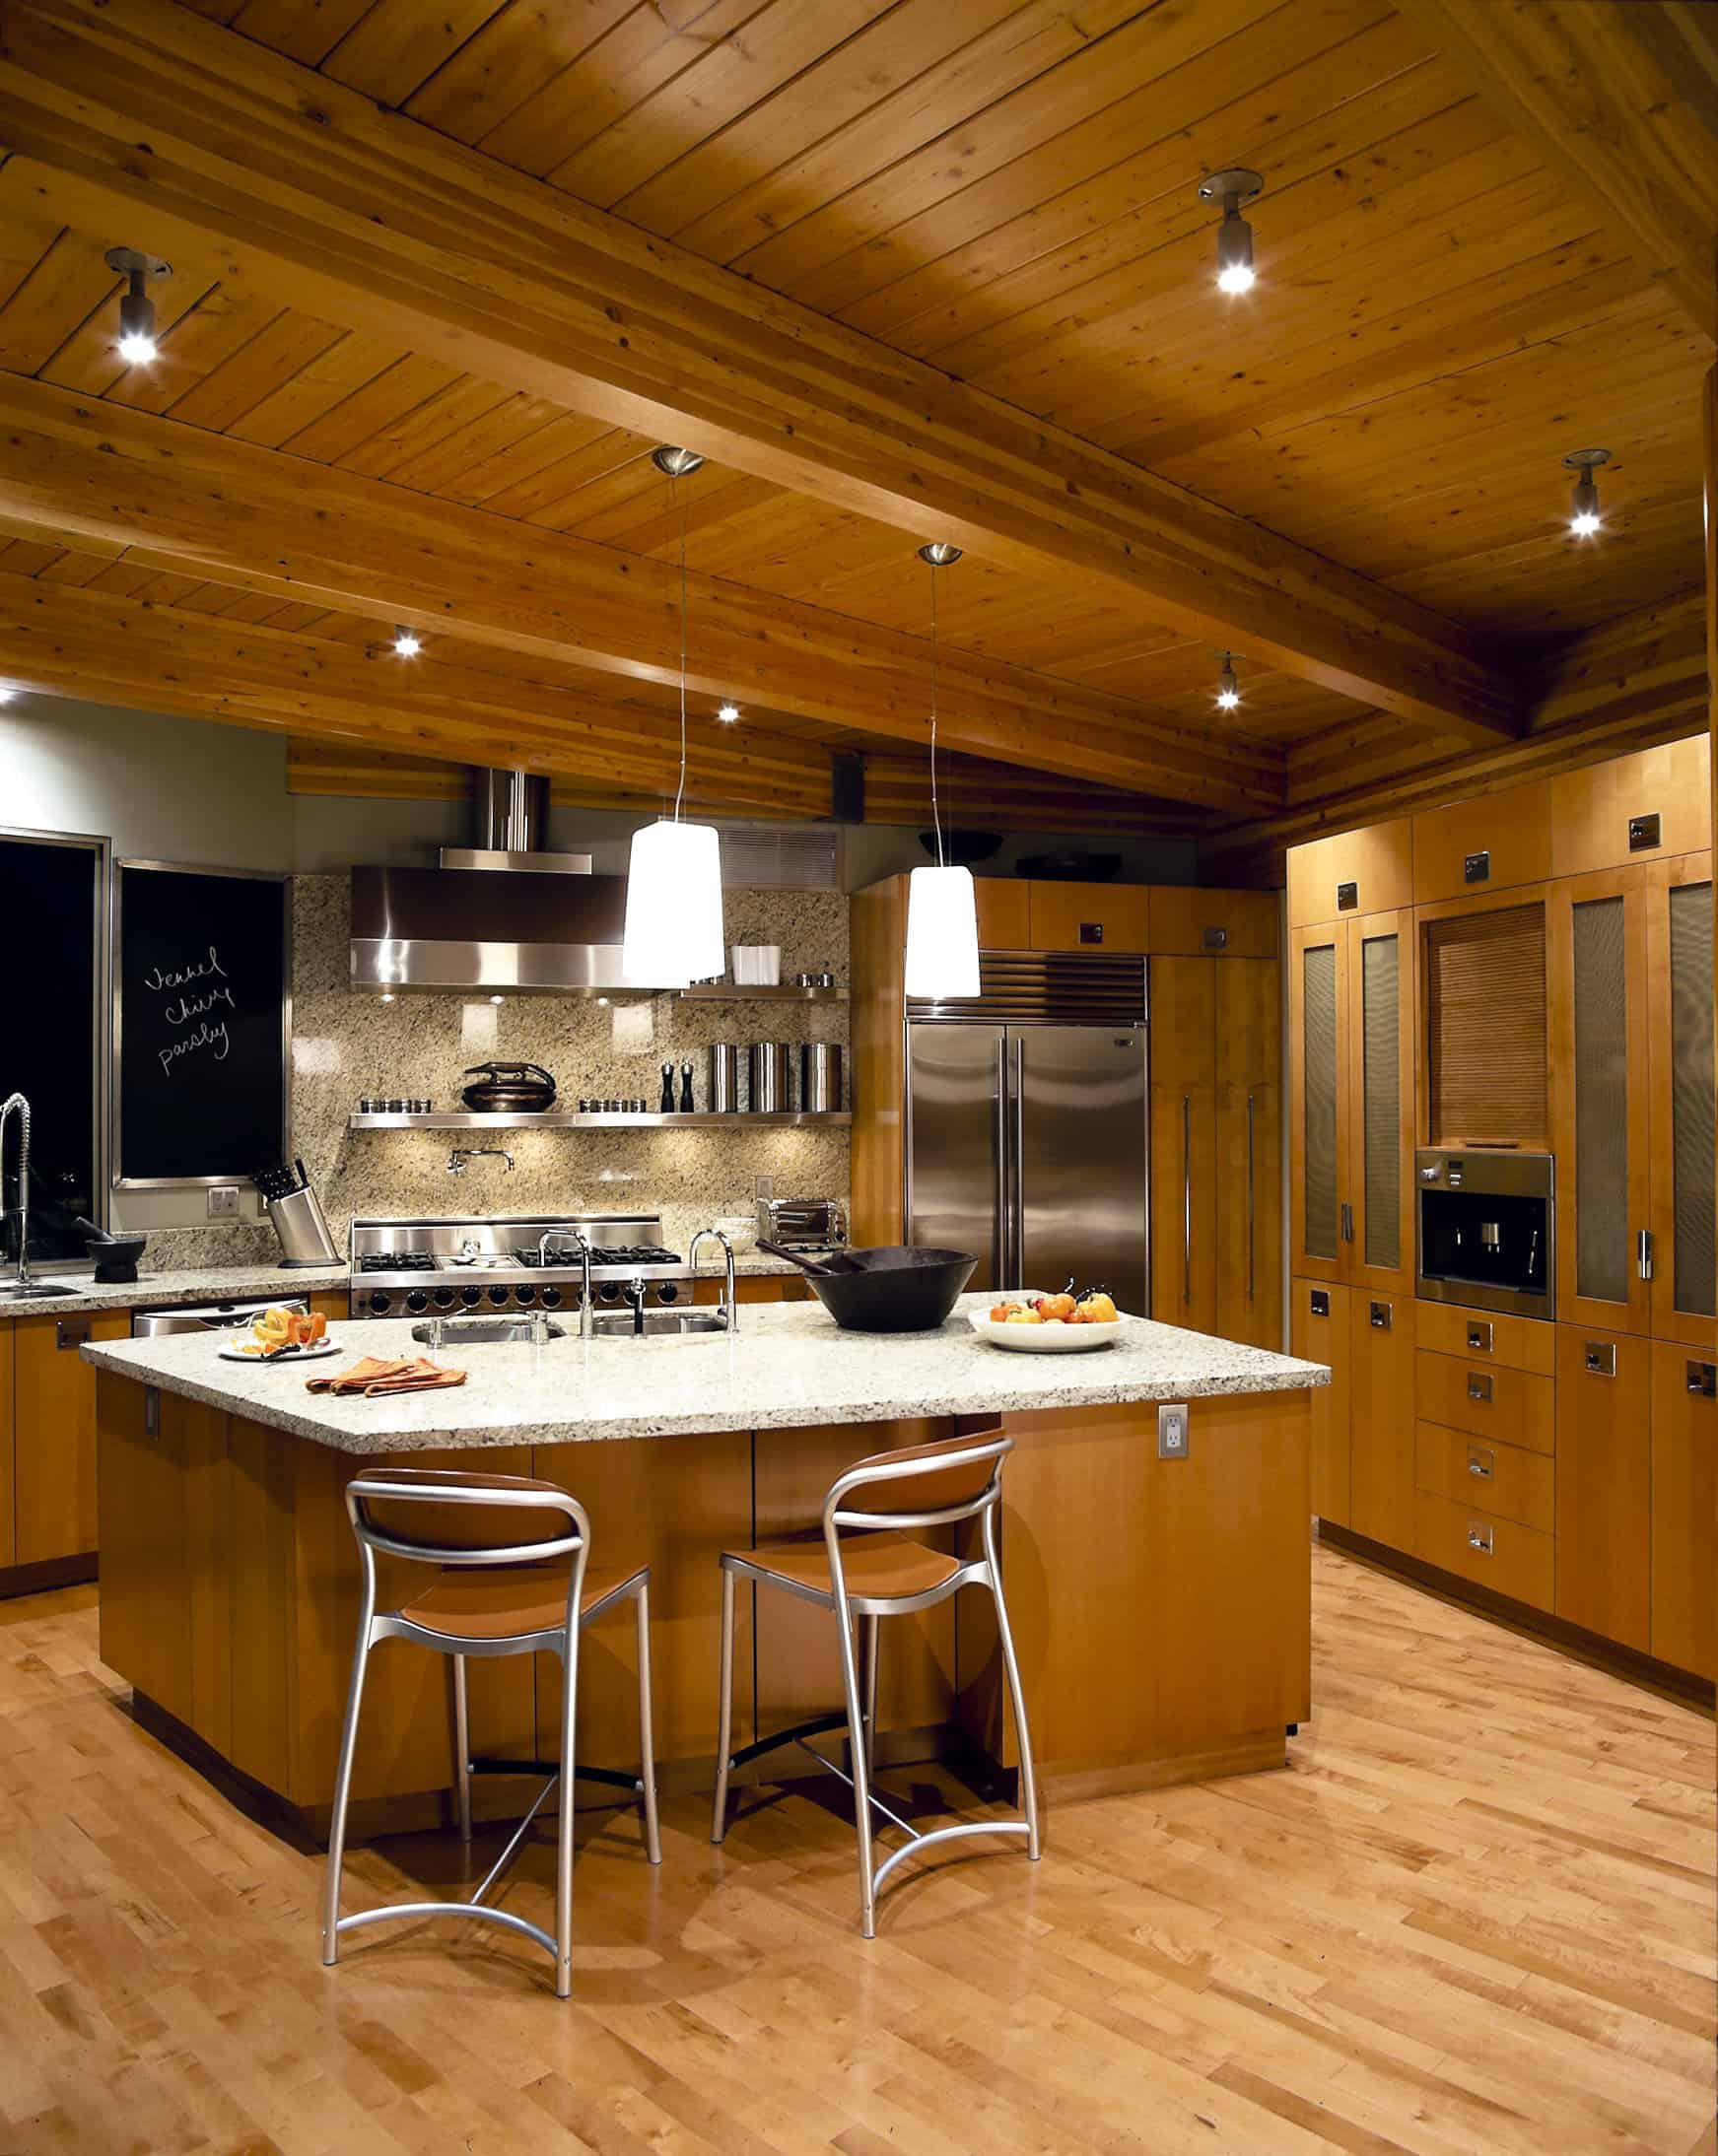 This kitchen boasts a large center island with beautiful marble countertop set on the hardwood flooring that matches the wooden ceiling with exposed beams.